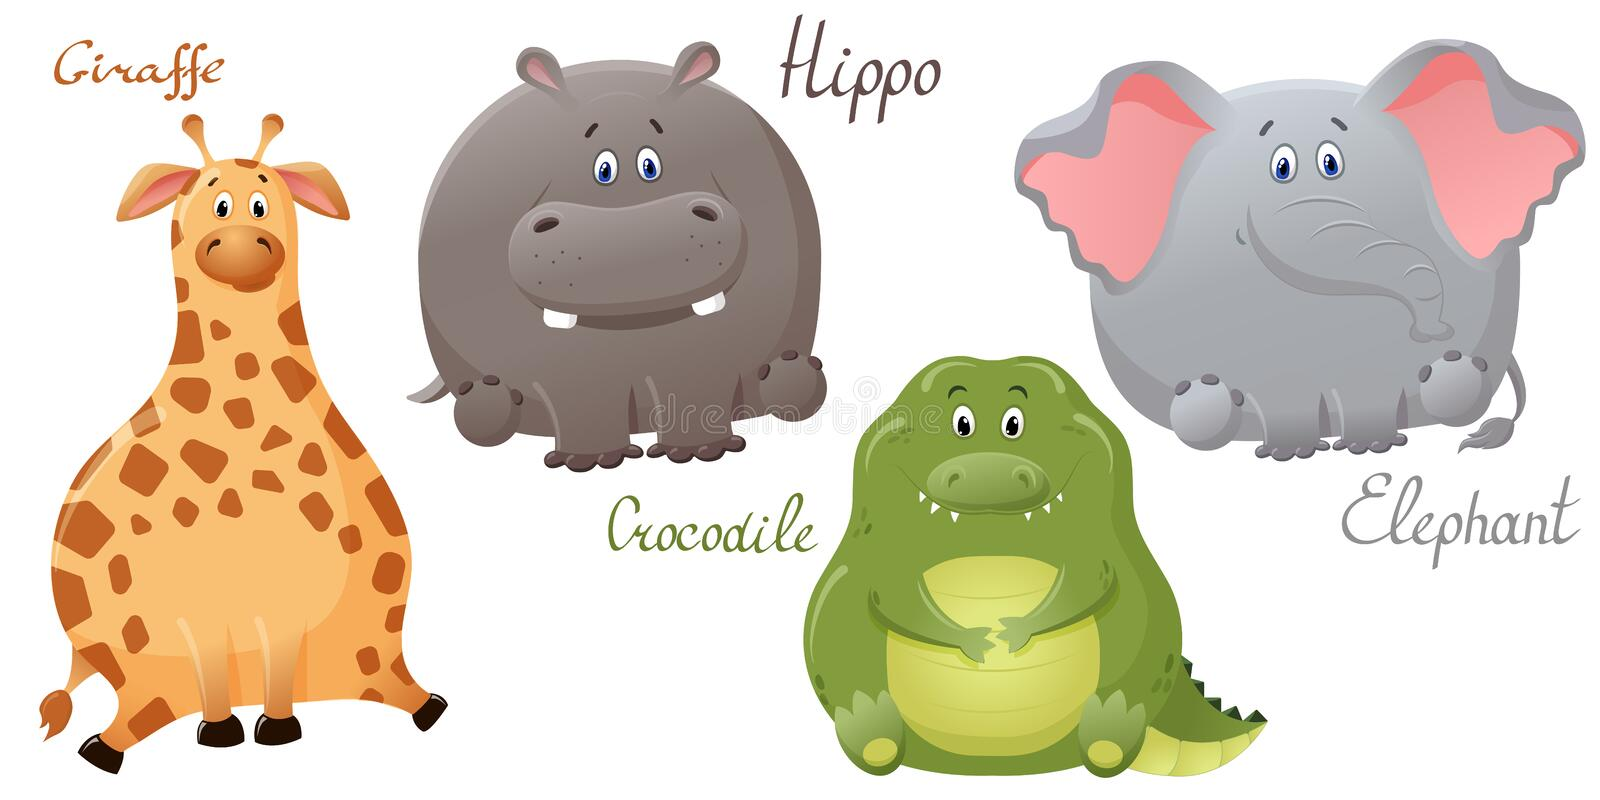 Funny elephant, giraffe, crocodile and hippopotamus. Set of vector cute fat cartoon characters. The concept of fun design for royalty free illustration